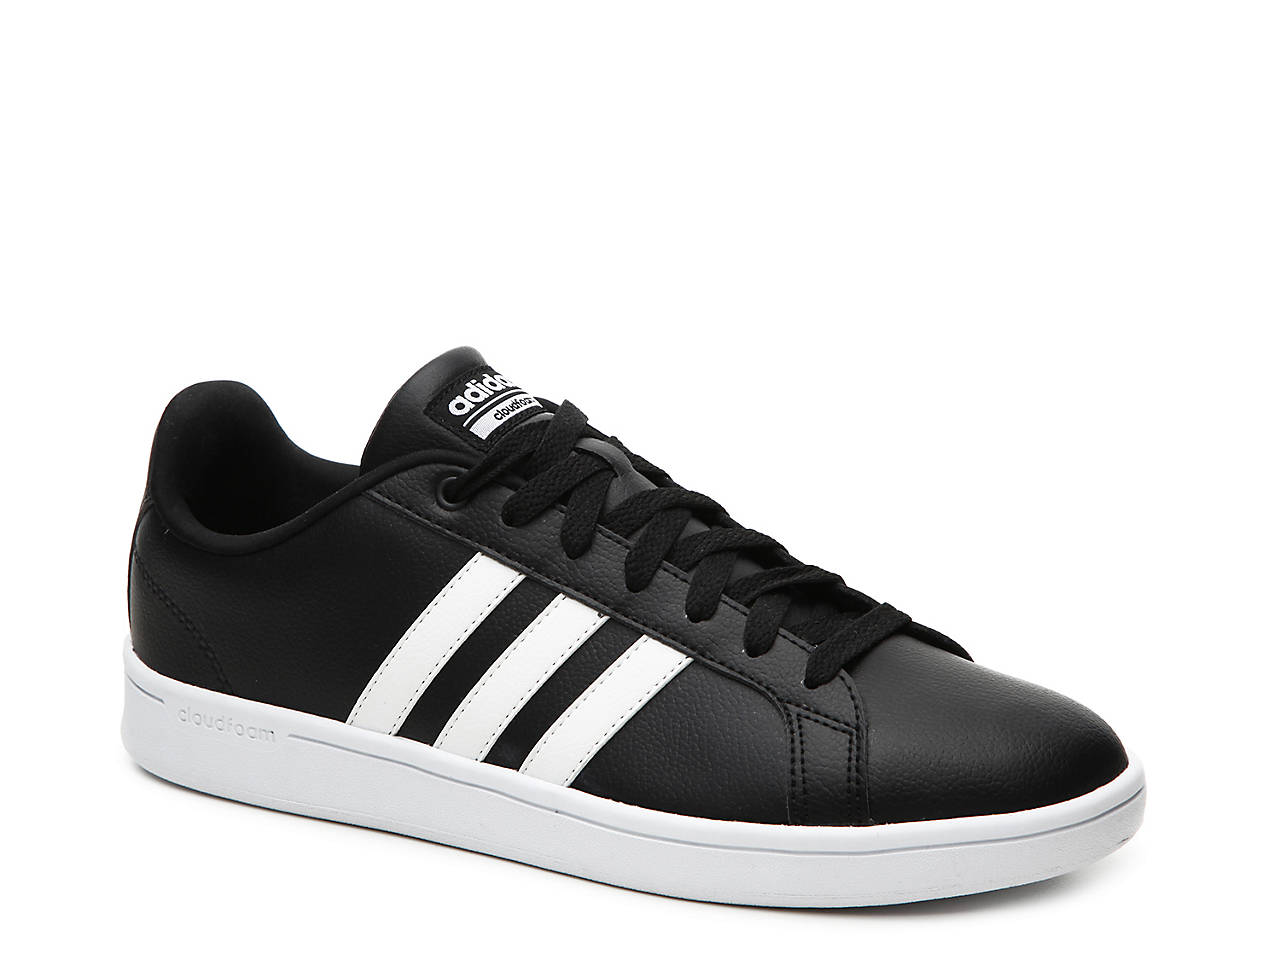 54f2f64dcf56 adidas Advantage Sneaker - Men s Men s Shoes